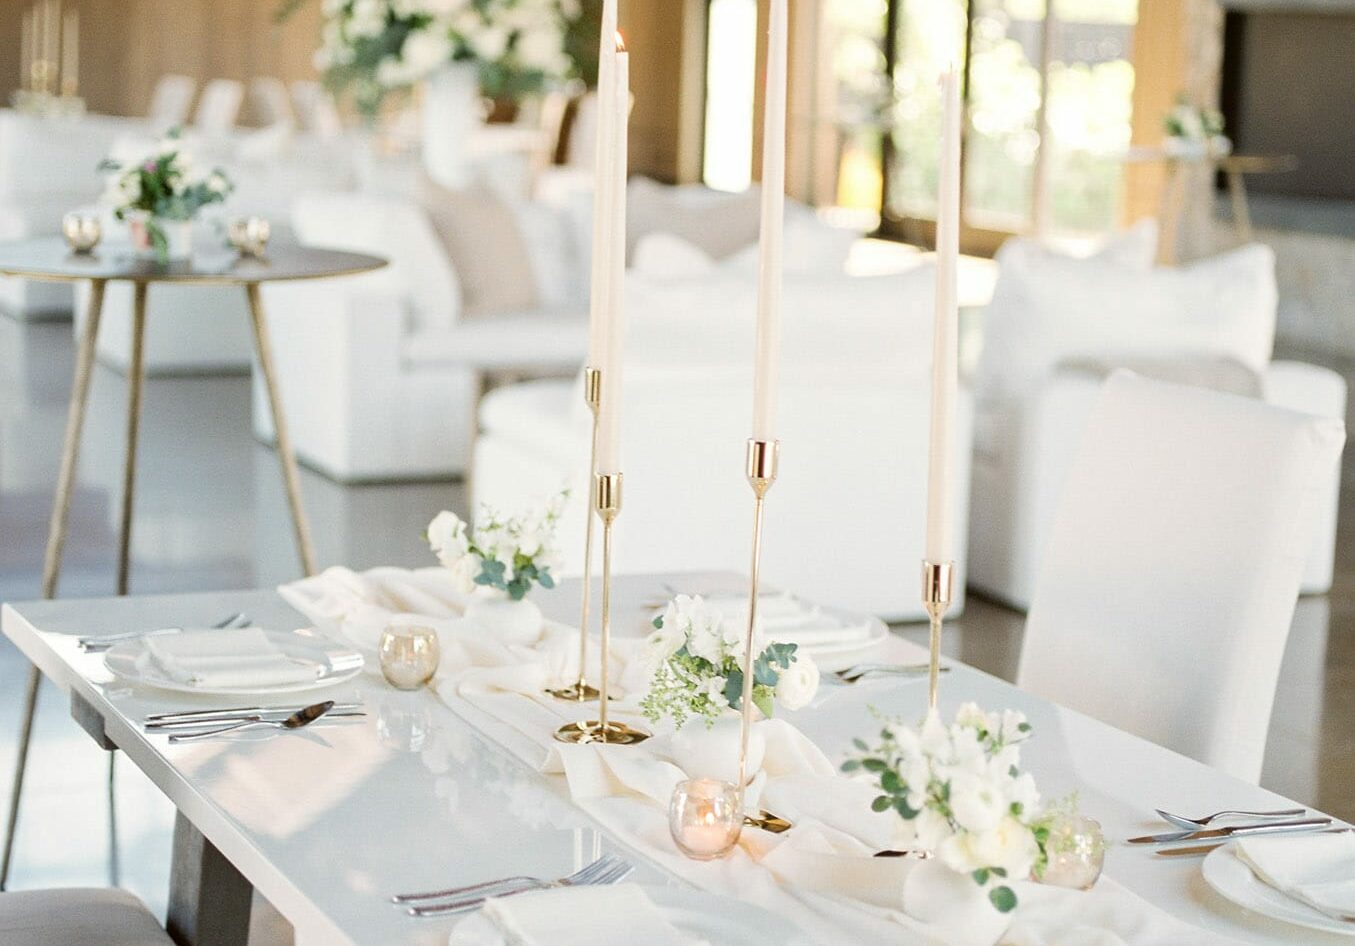 The Estate Yountville Wedding Table